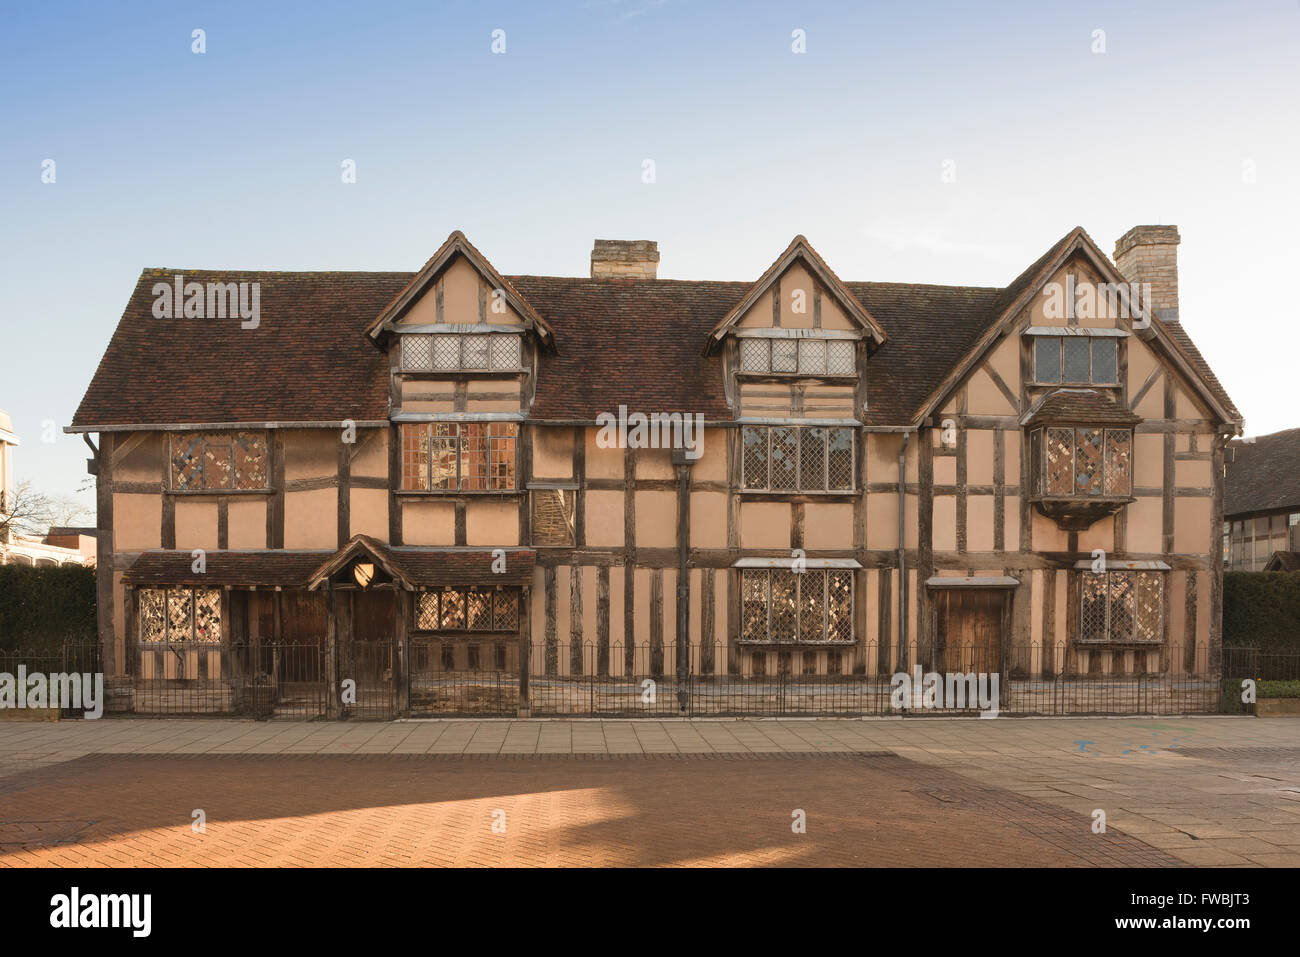 William Shakespeare's birthplace in Henley Street, Stratford Upon Avon, England. - Stock Image